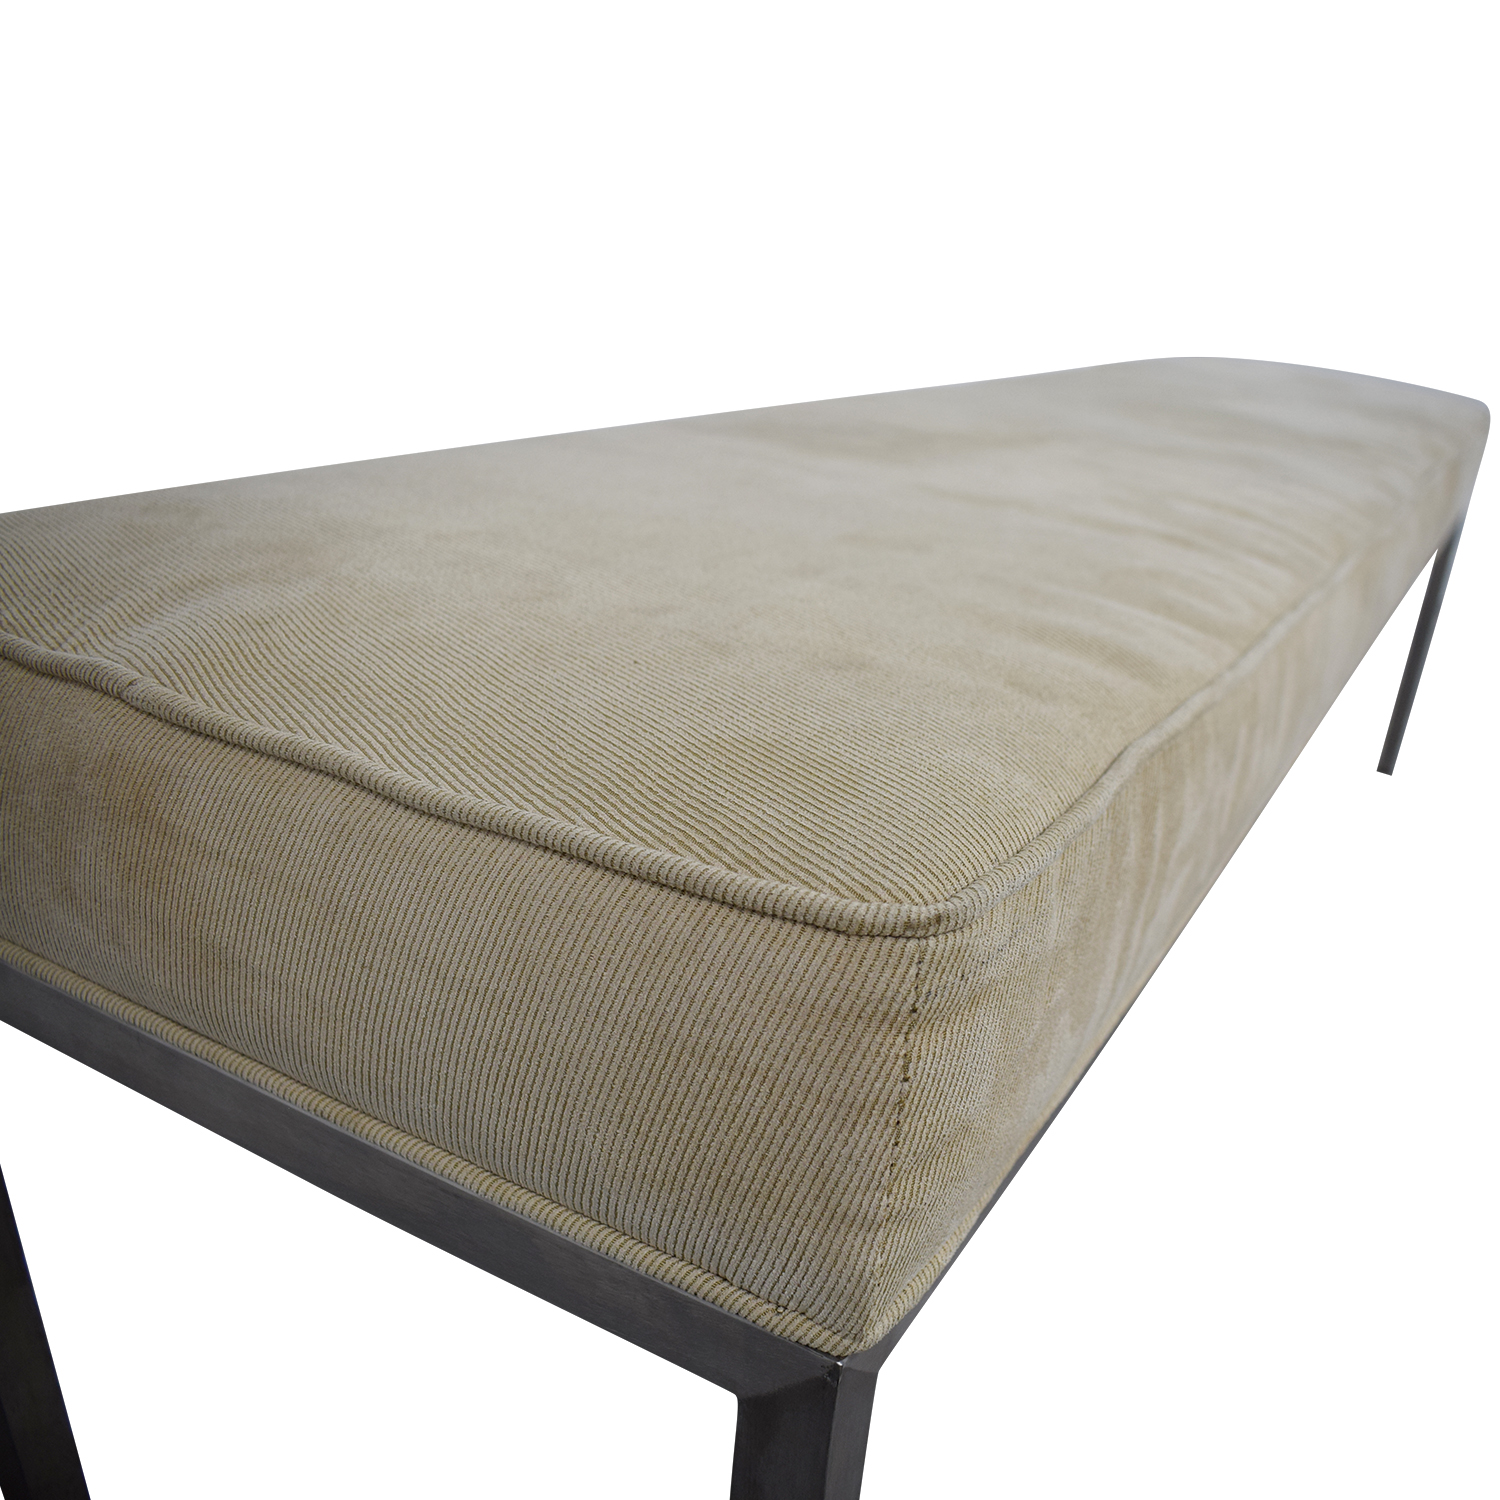 Room & Board Room & Board Portica Beige Custom Bench price